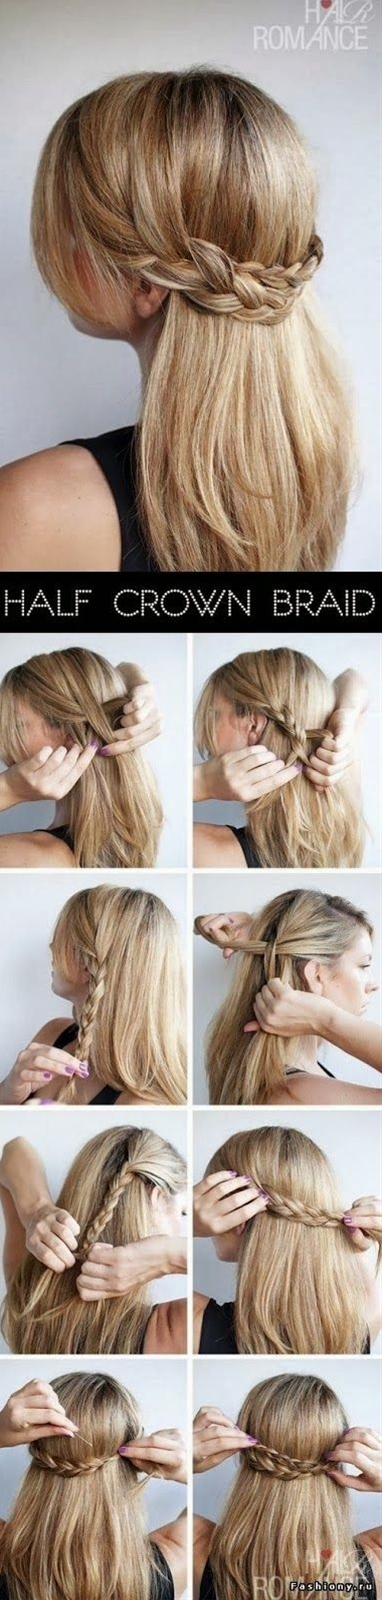 Easy Way to get such Hair style, a nice tutorial